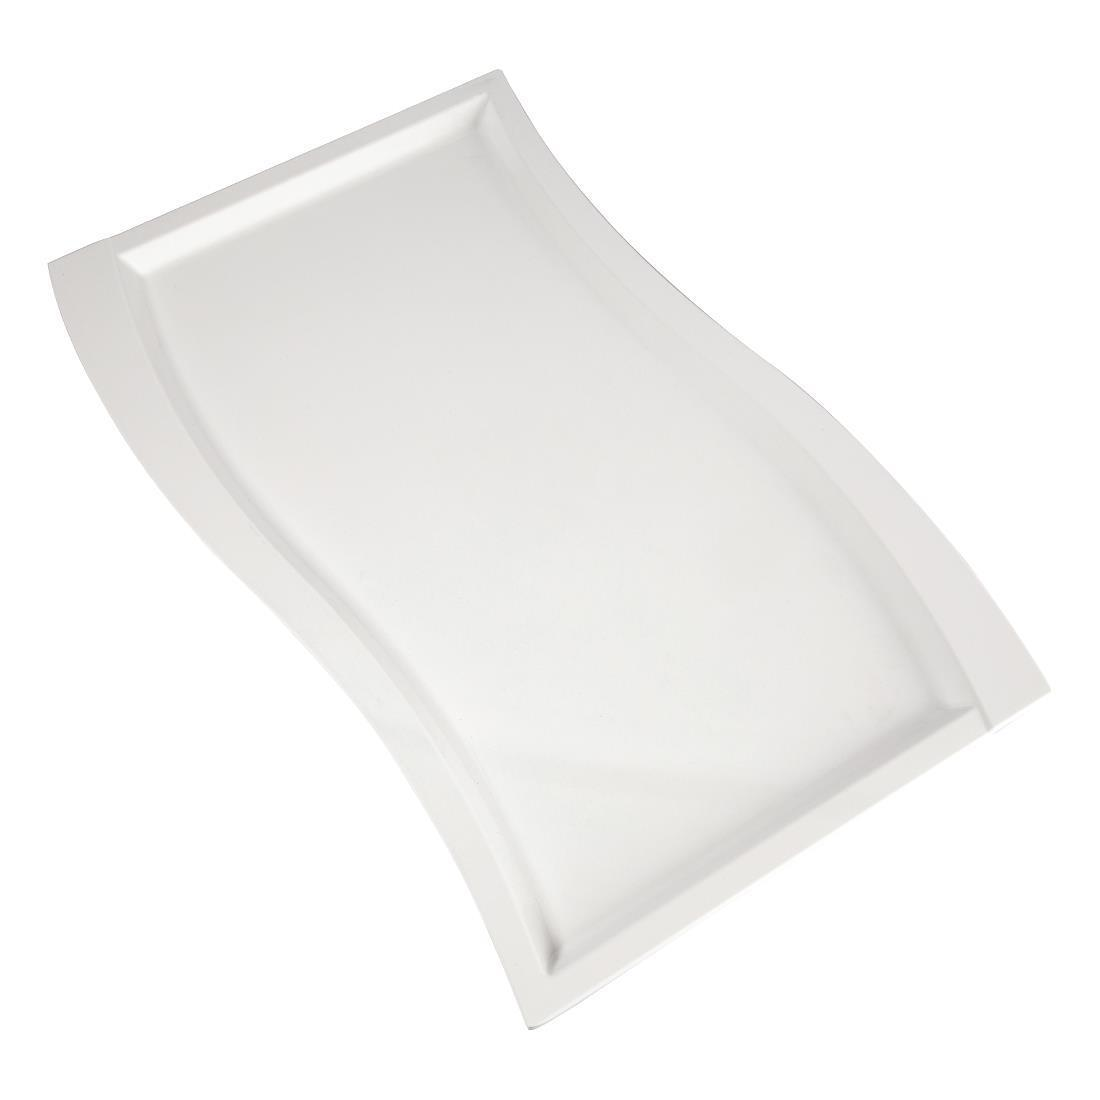 APS Wave Melamine Platter White GN 1/1 - Each - GK826